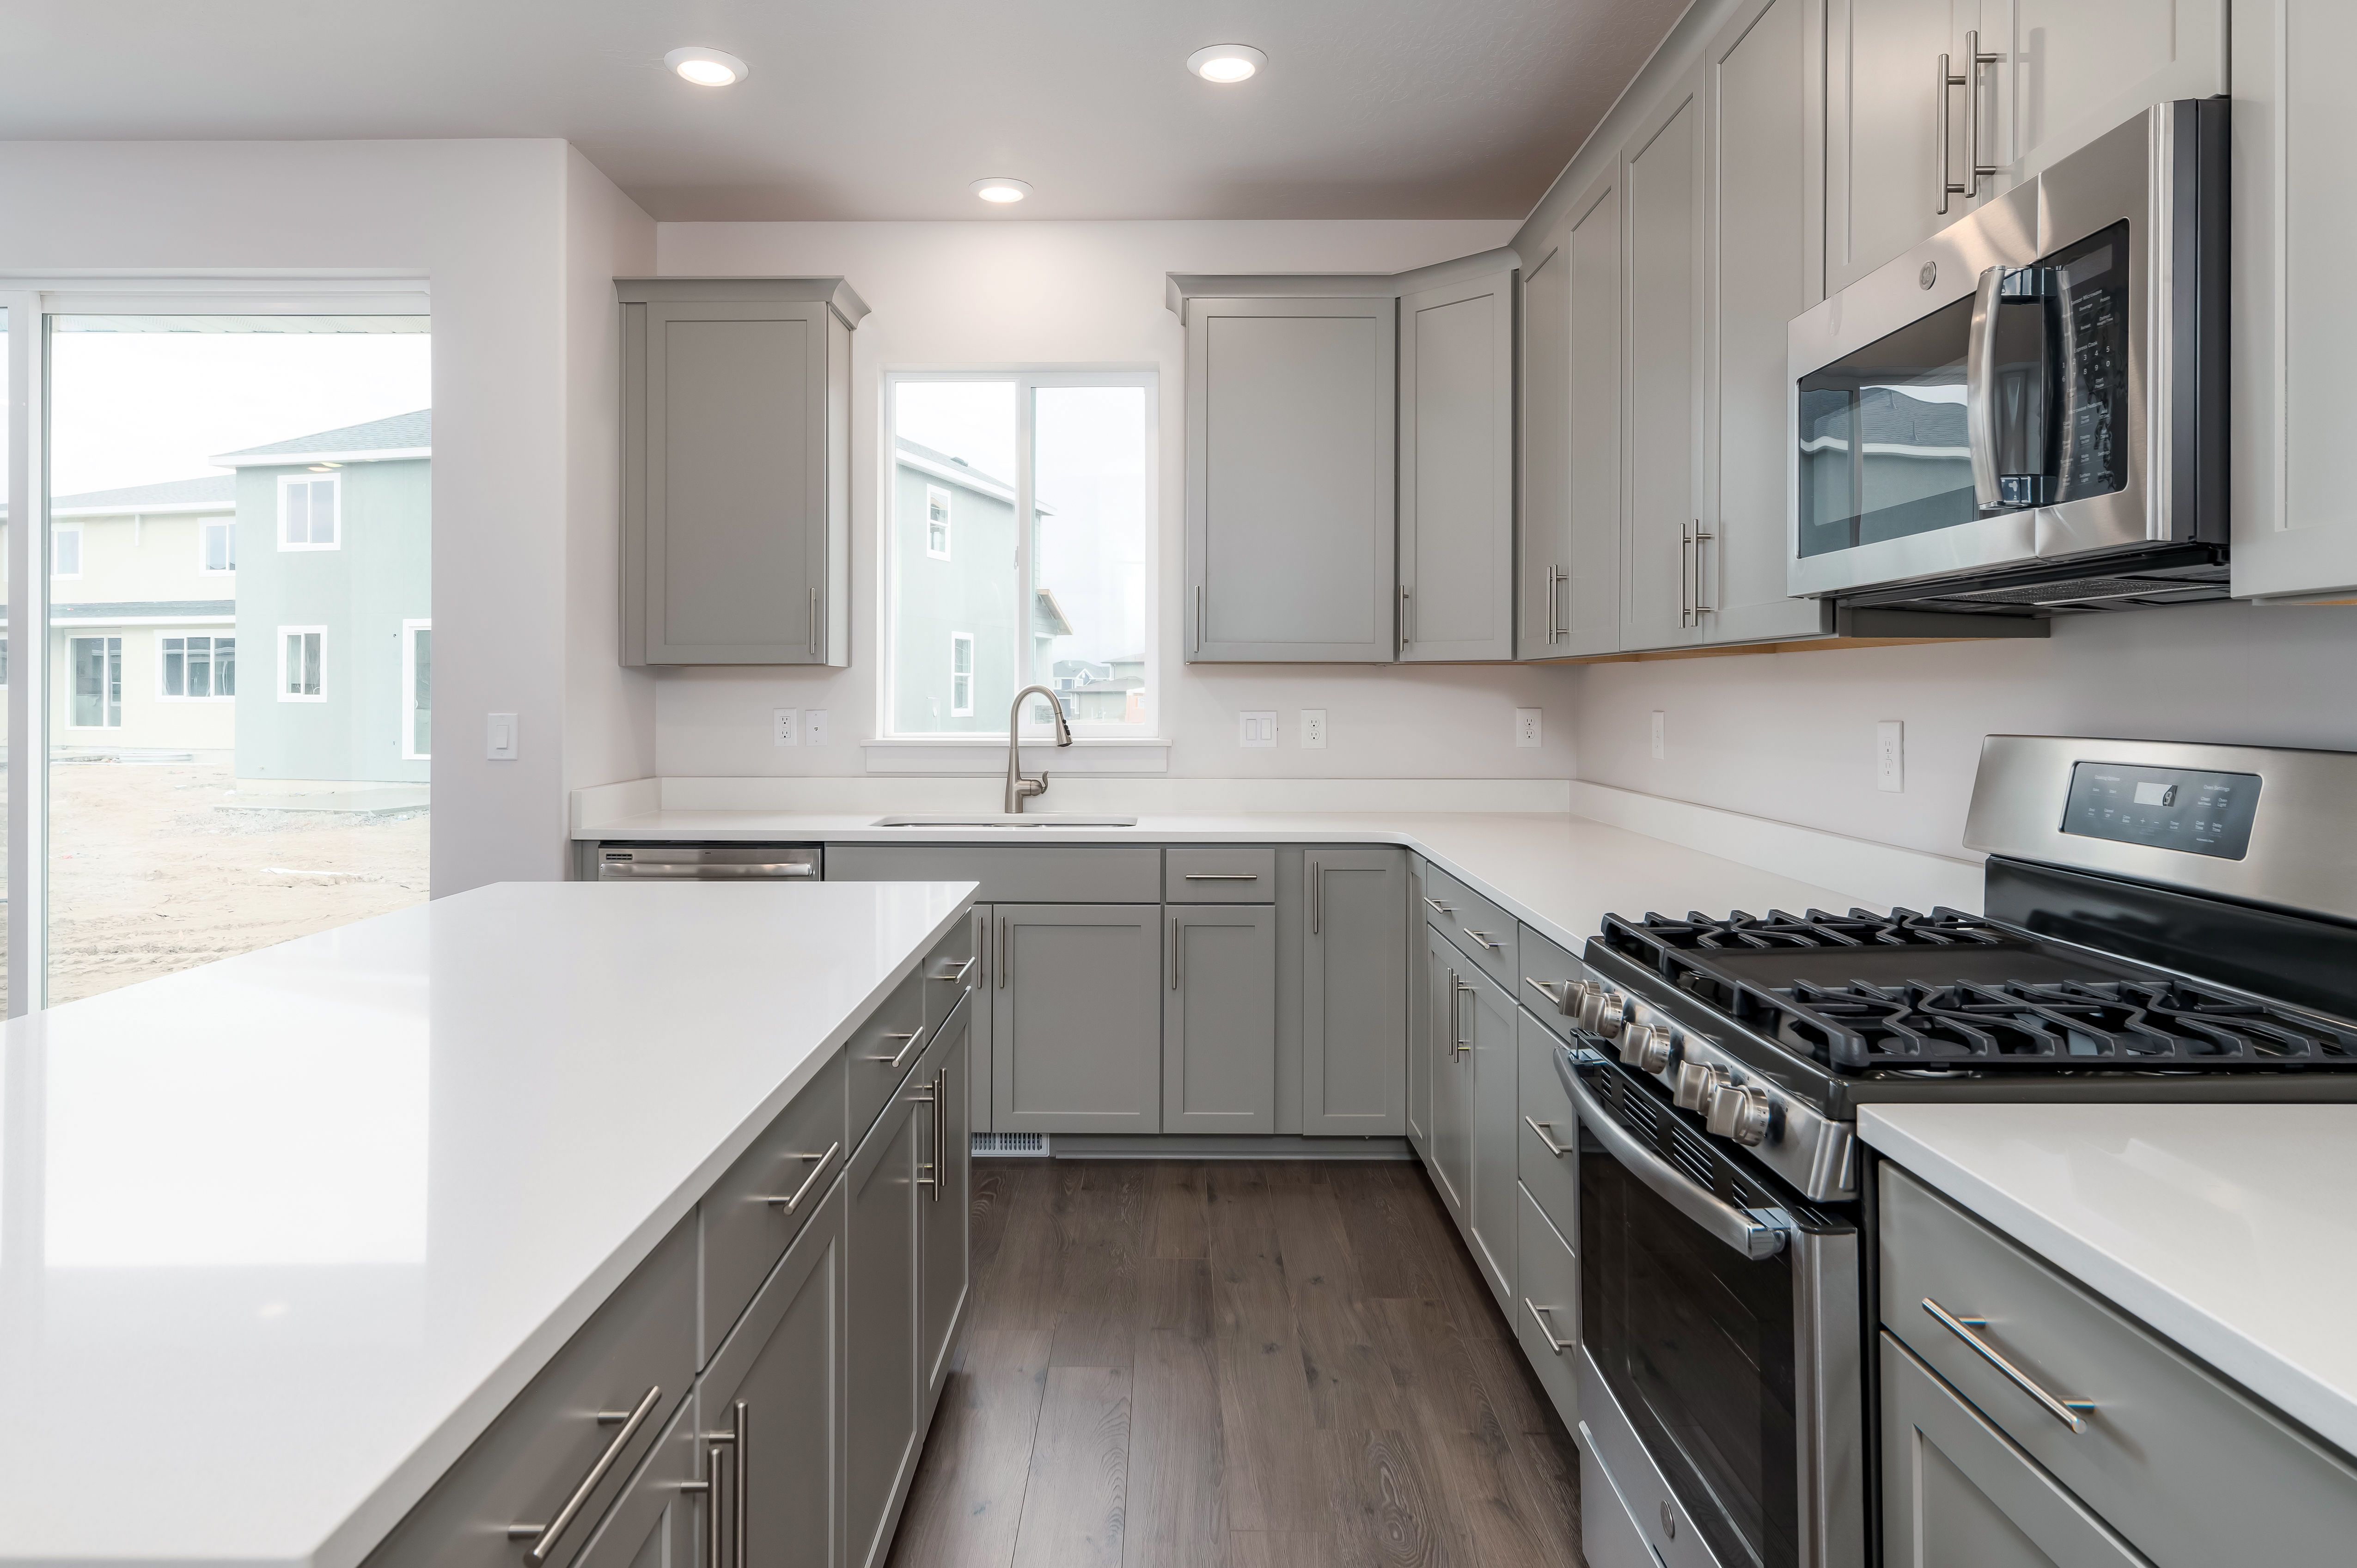 White Quartz Countertops And On Trend Gray Cabinetry Give This